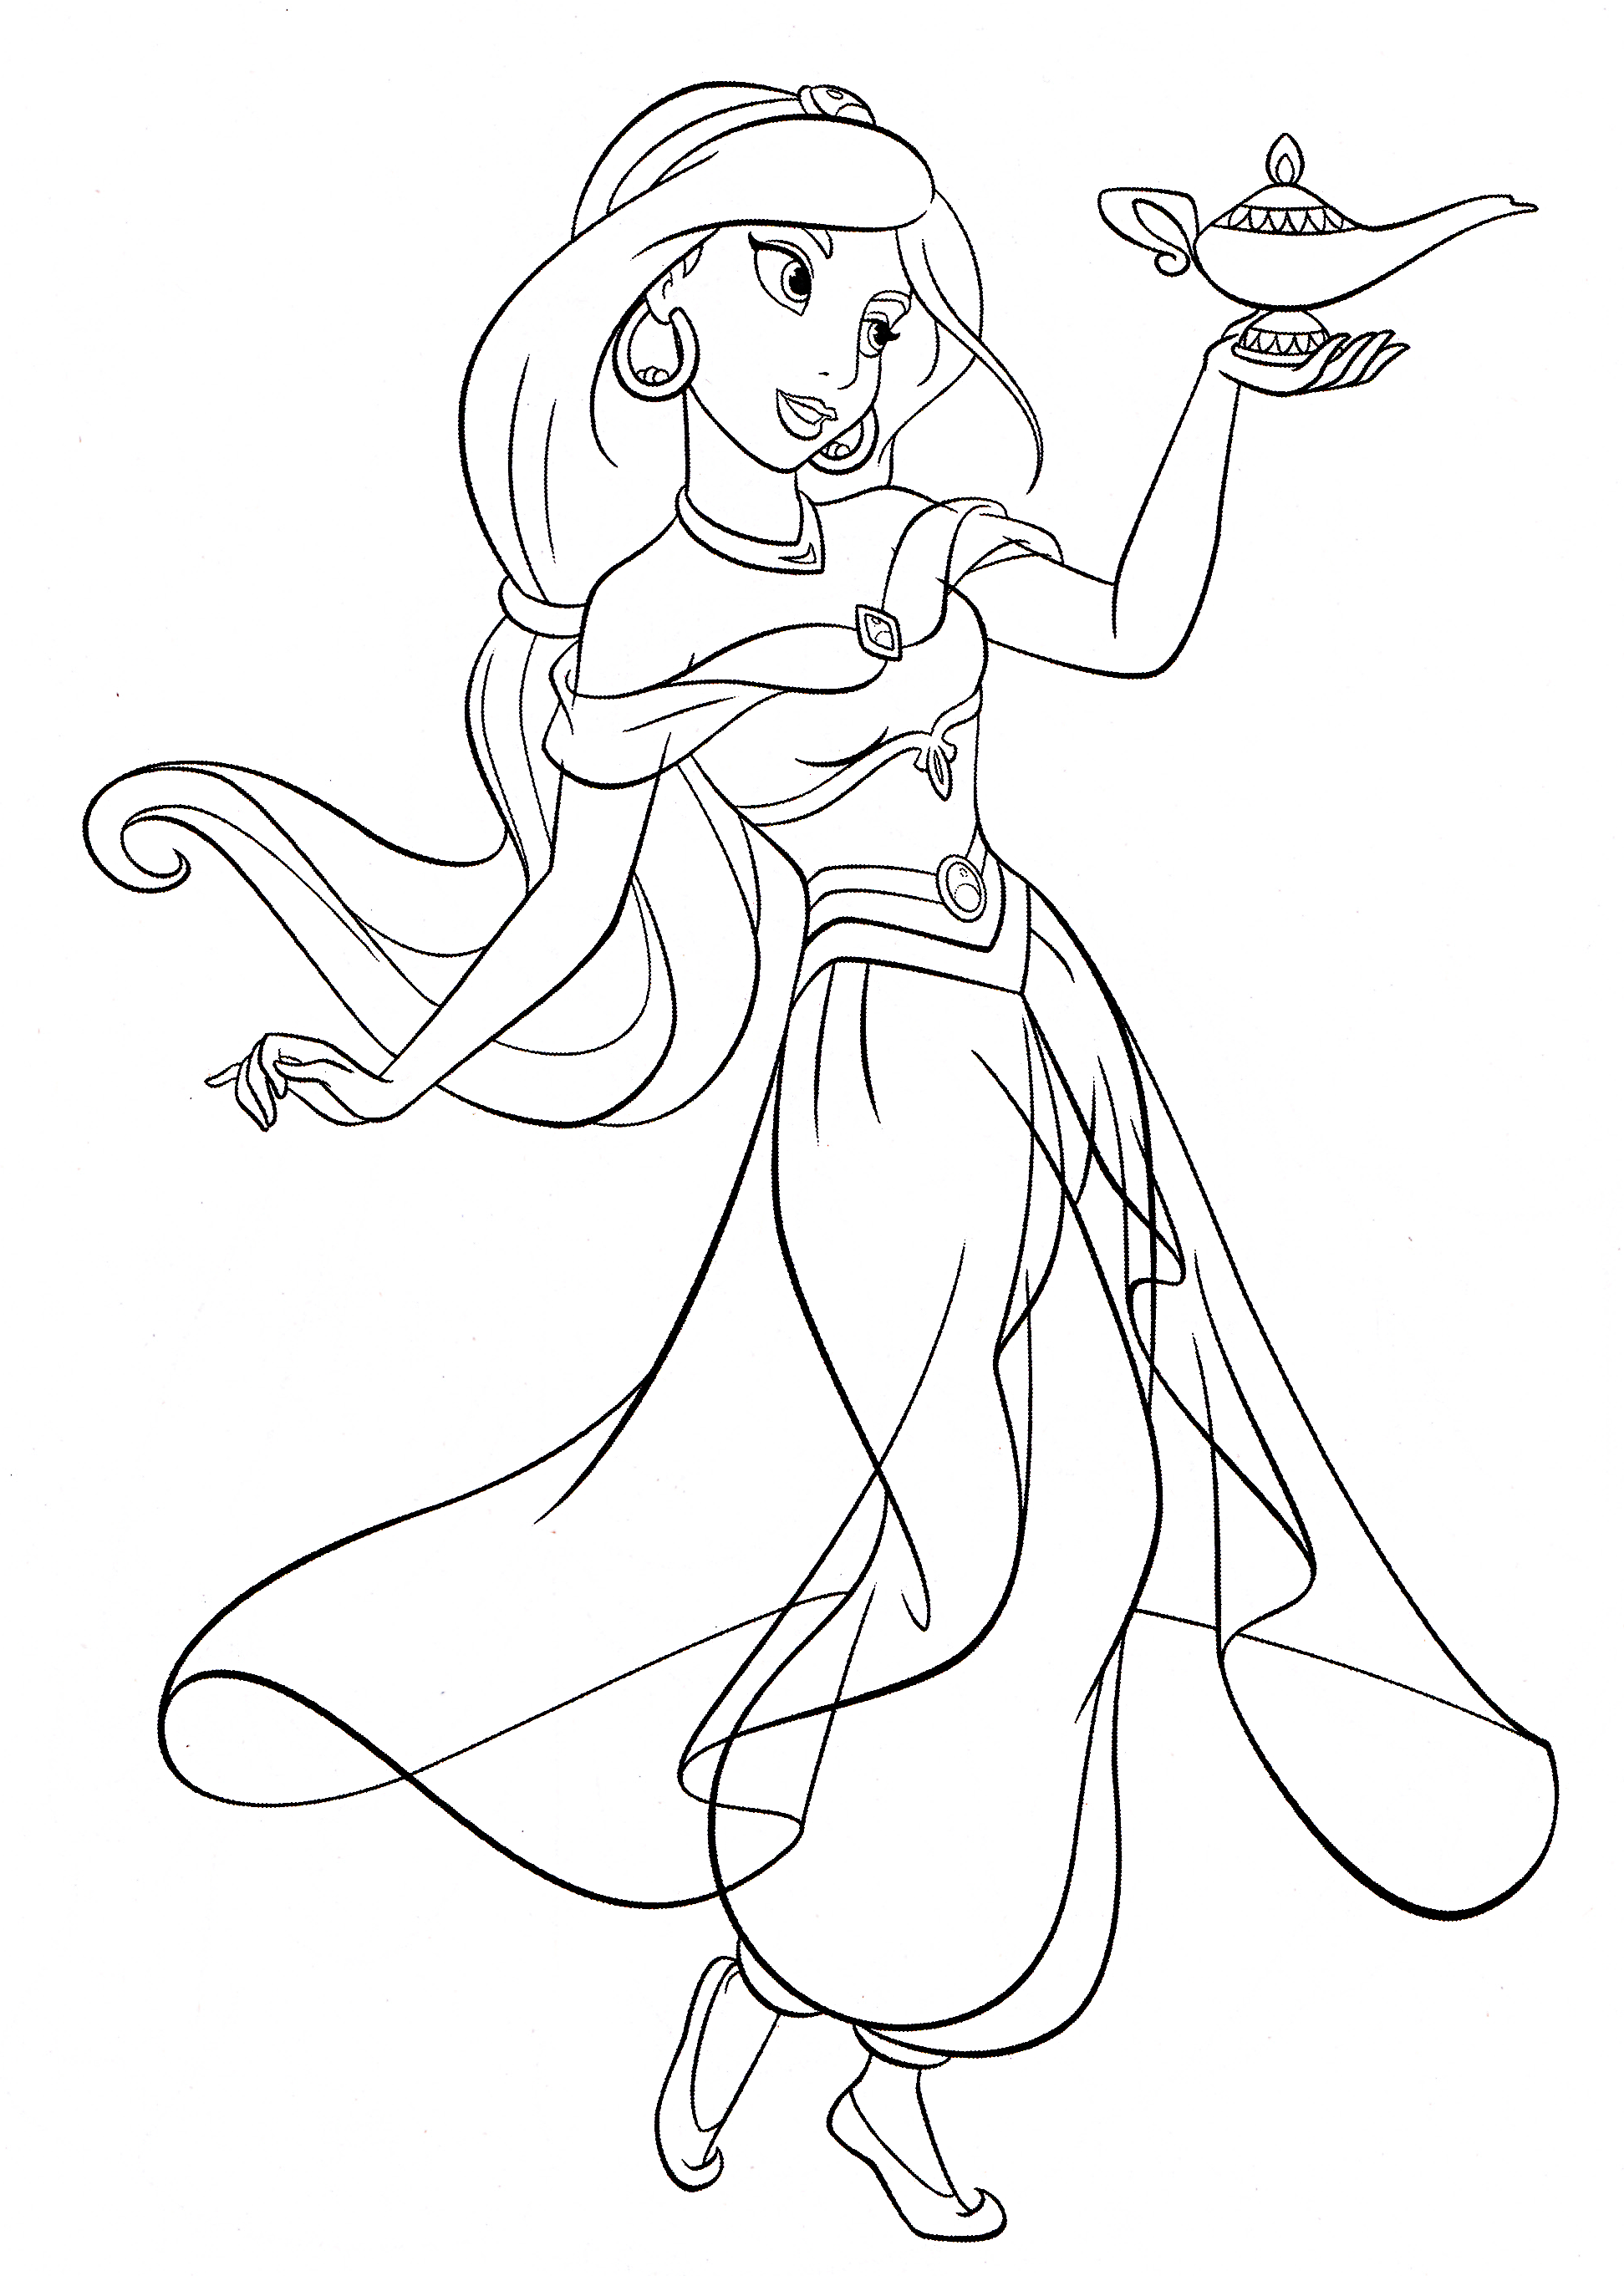 jasmine online coloring pages - photo#12